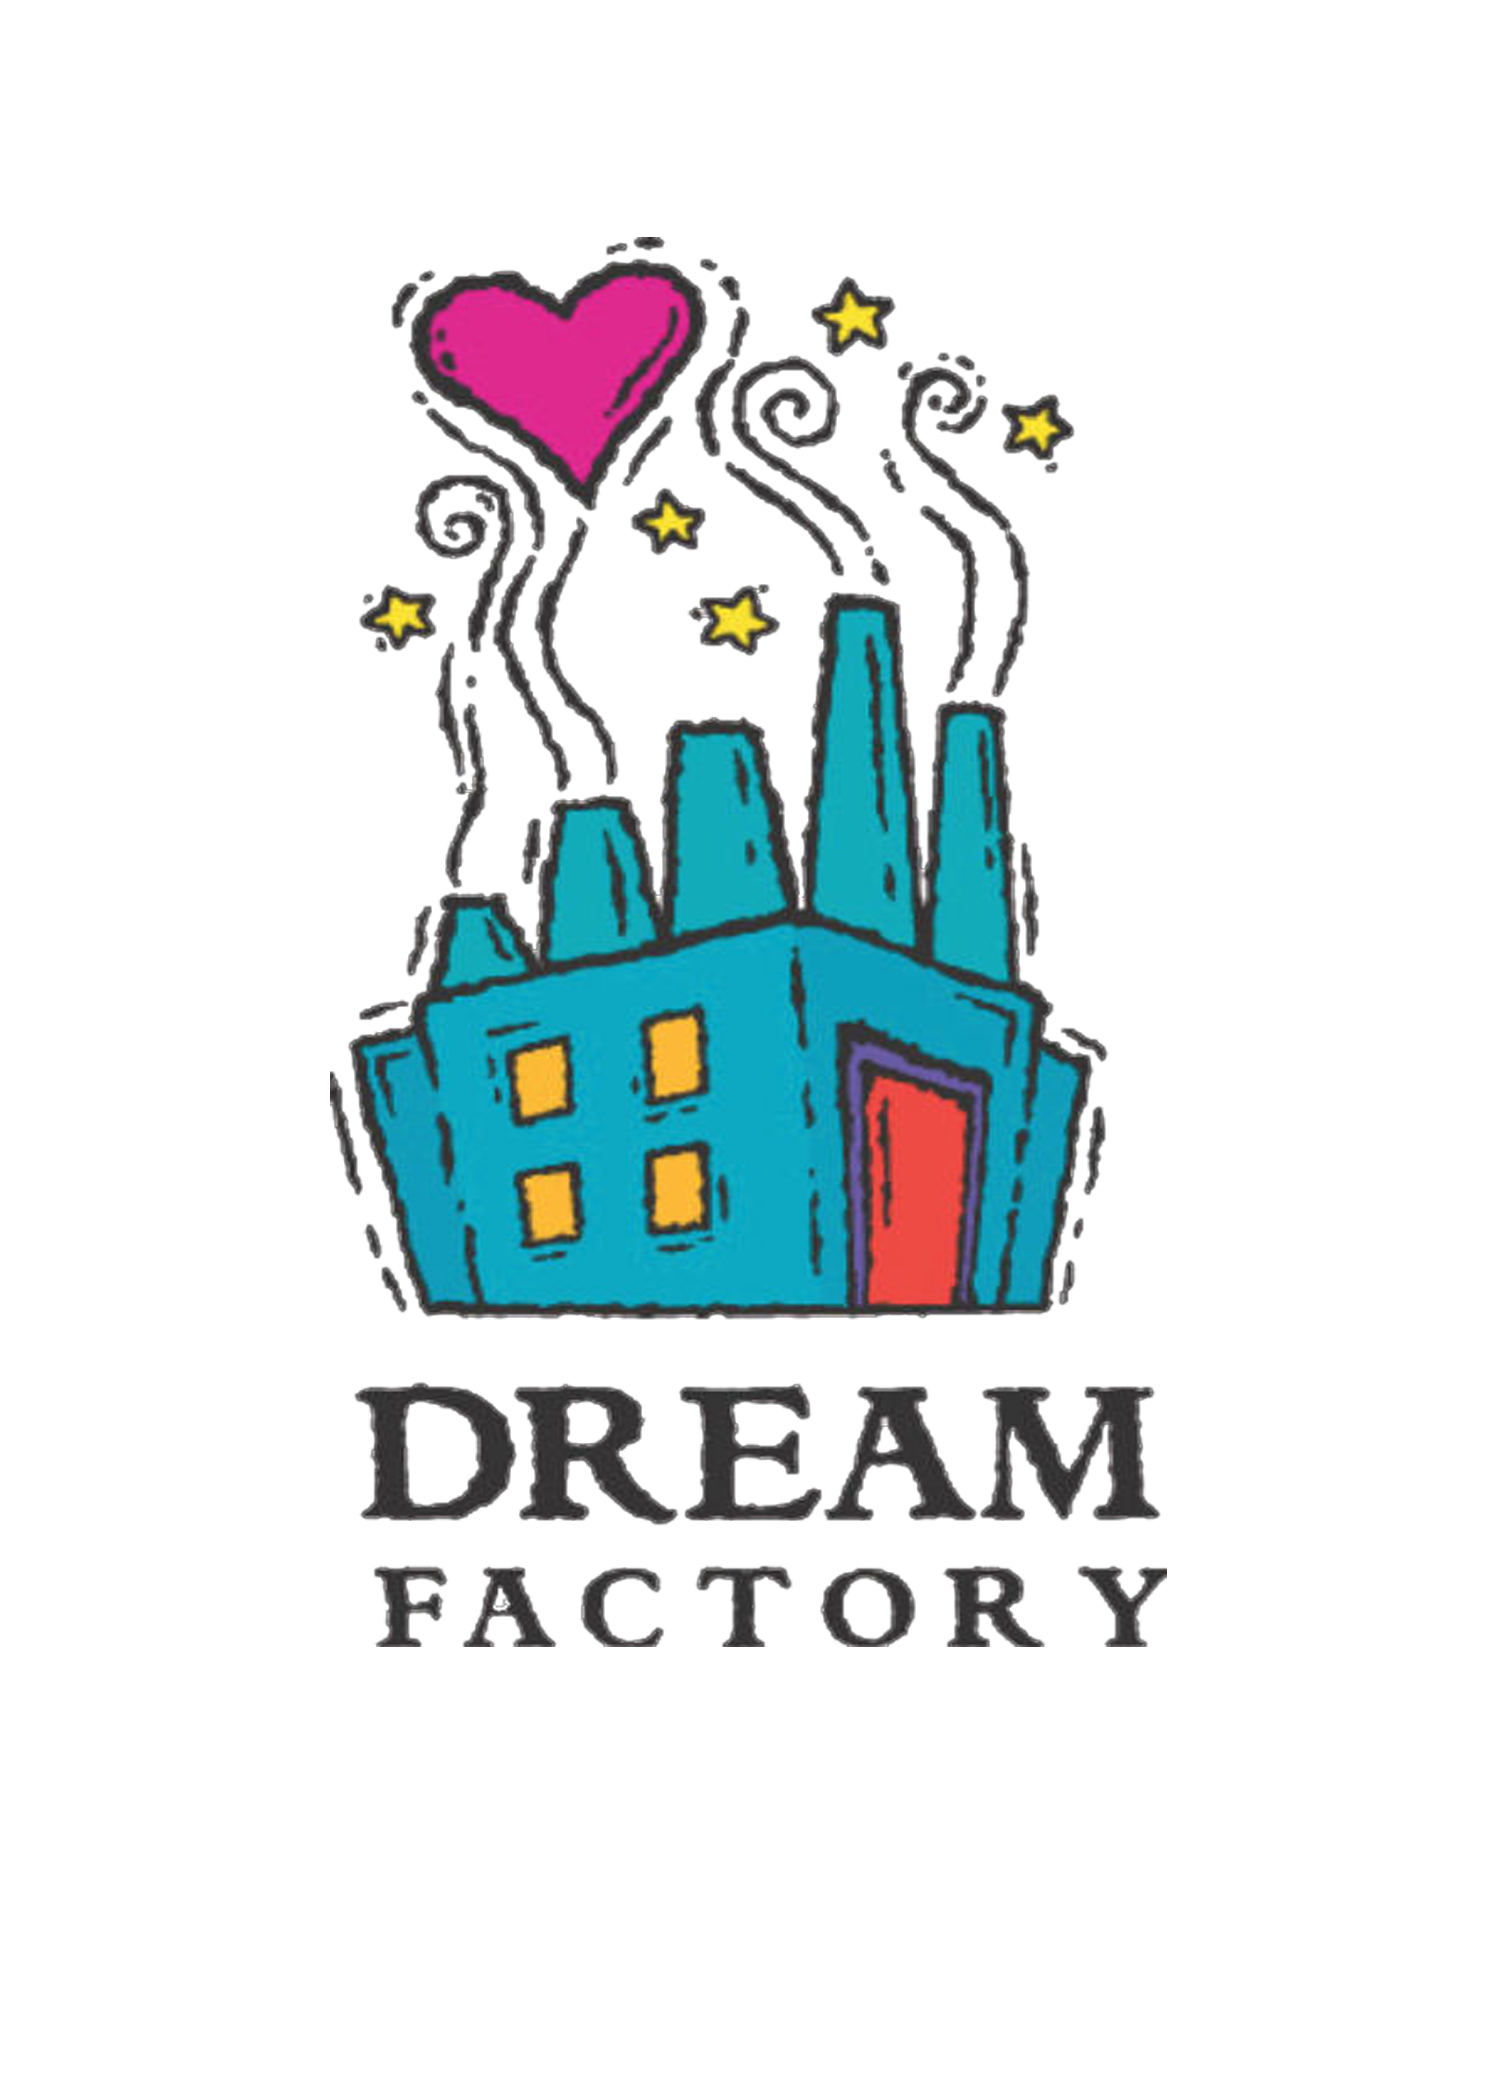 Dreaming transparent free on. Dreams clipart dream team